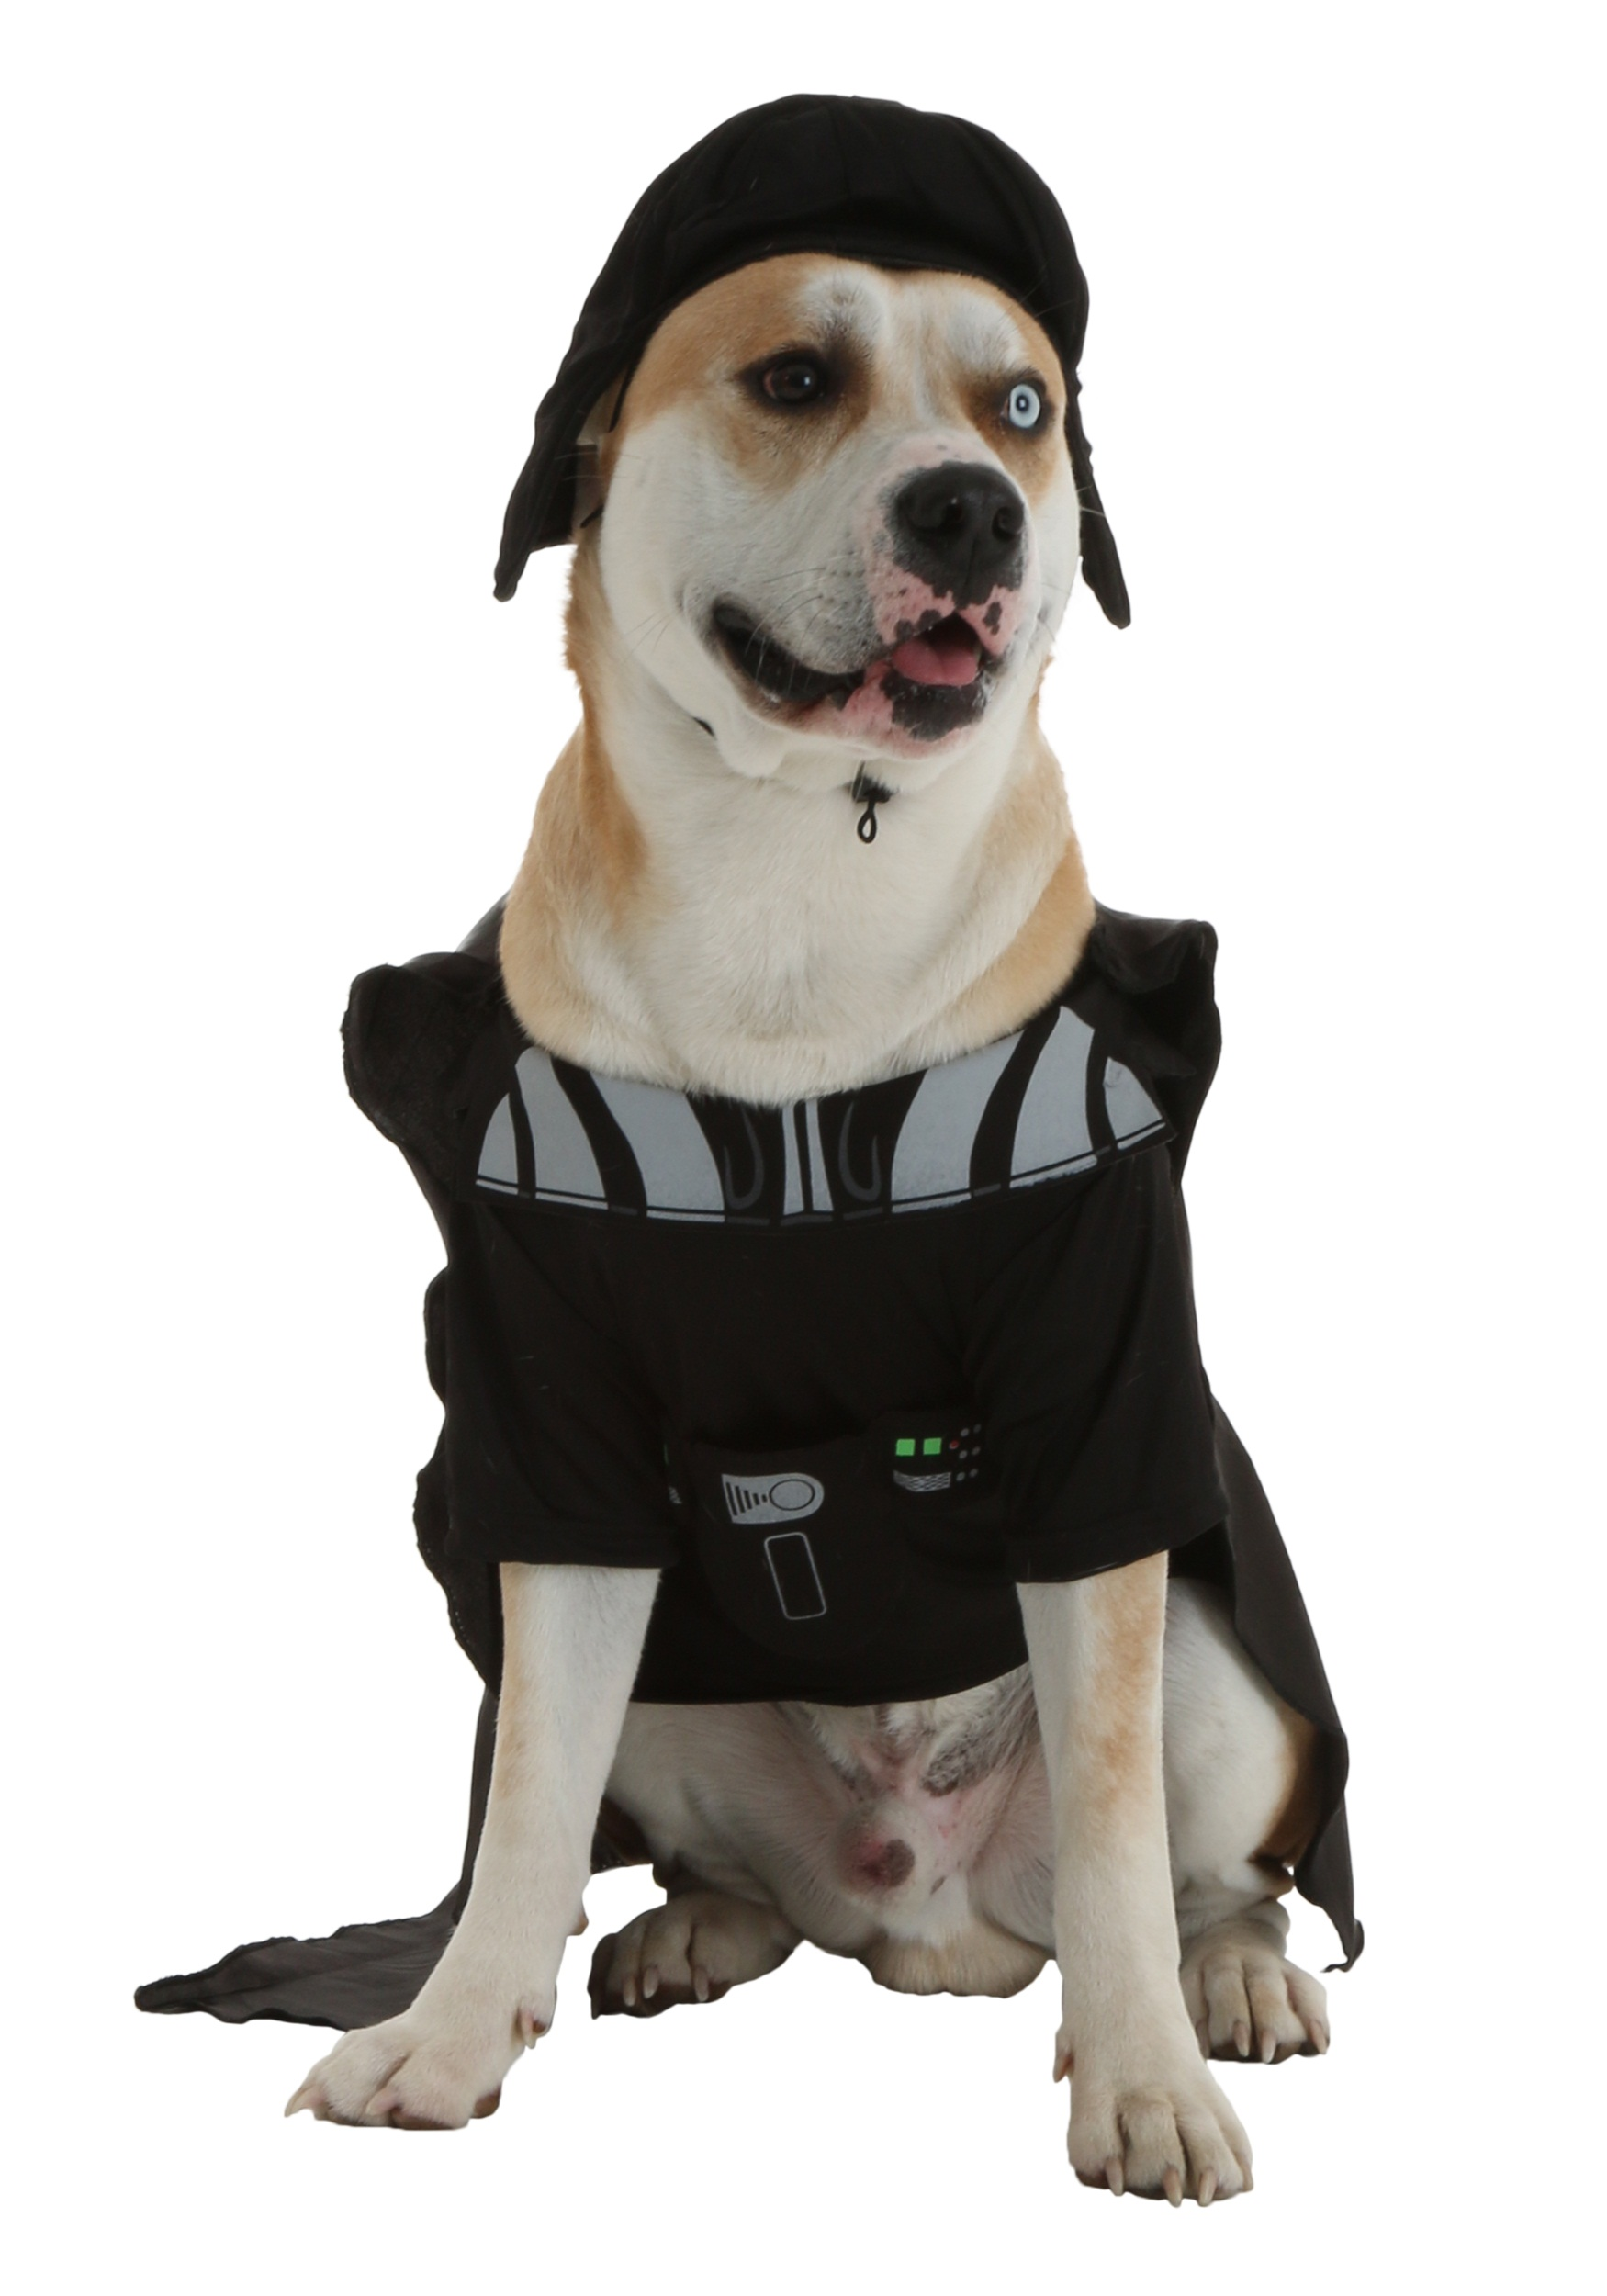 sc 1 st  Buy Star Wars Costumes & Darth Vader Dog Costume